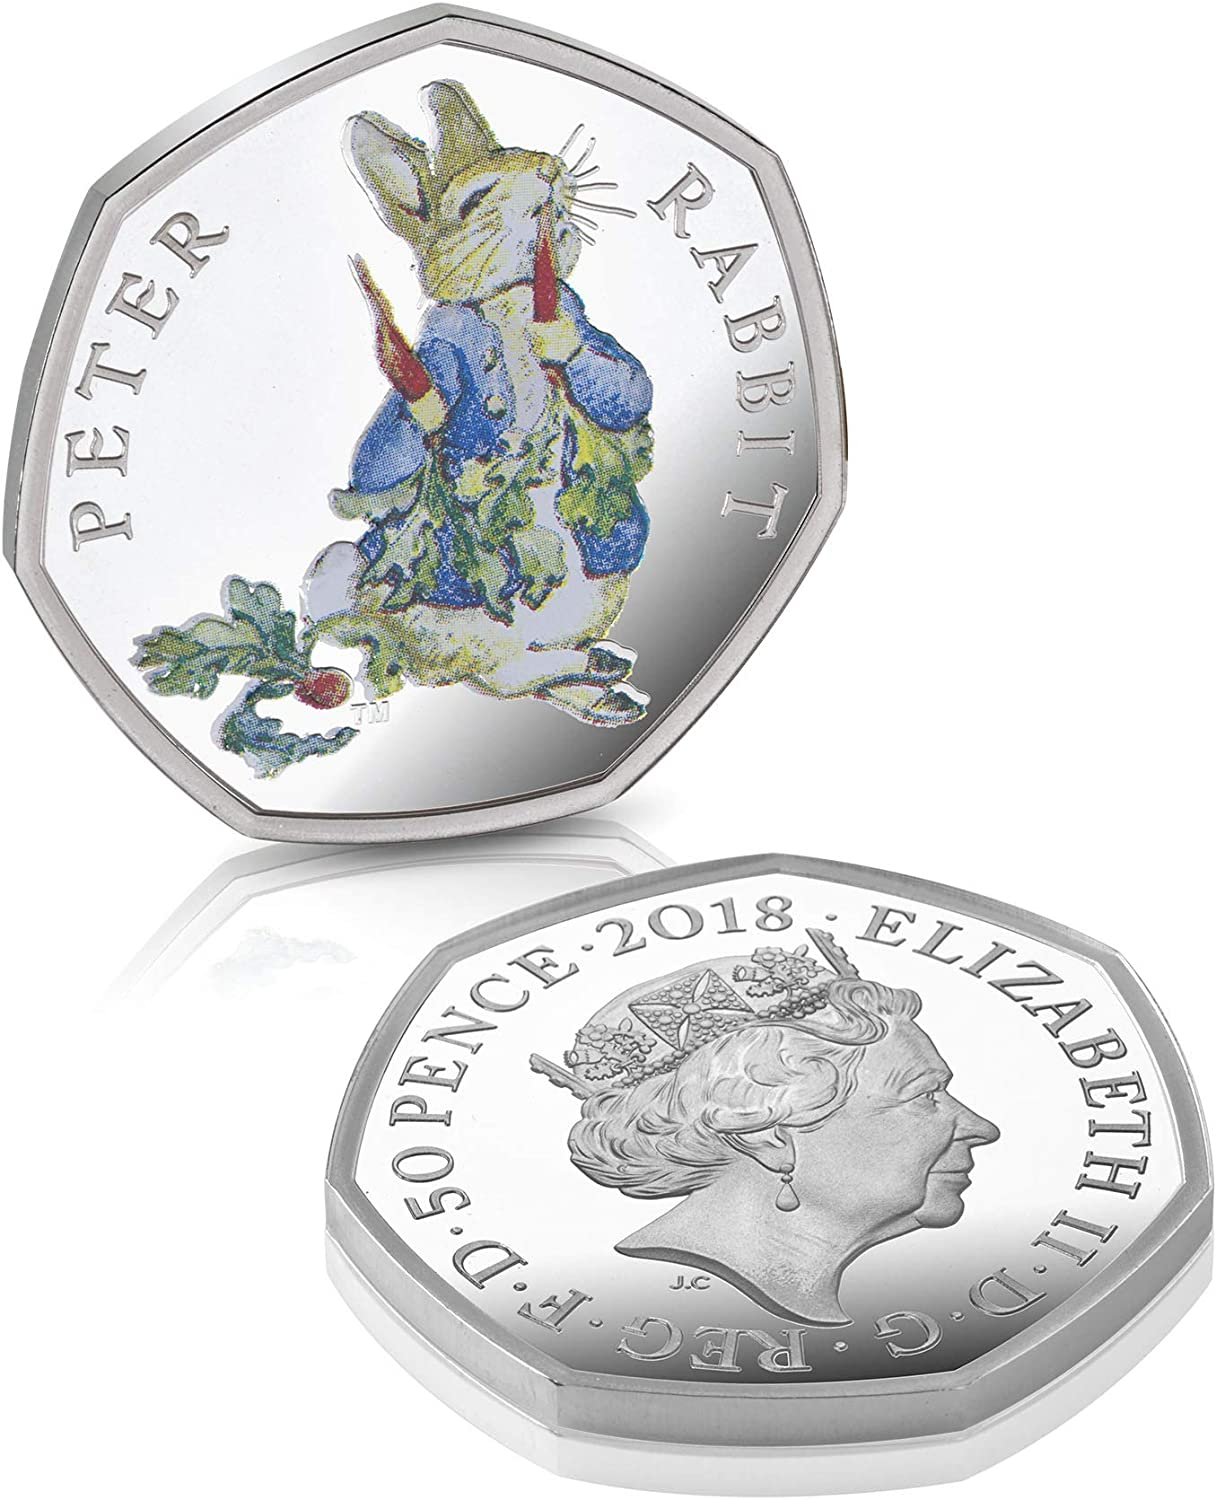 The Bradford Exchange The Peter Rabbit Silver Proof Fifty Pence Coin- New 2018 Royal Mint Fifty Pence Silver Proof Peter Rabbit Coin